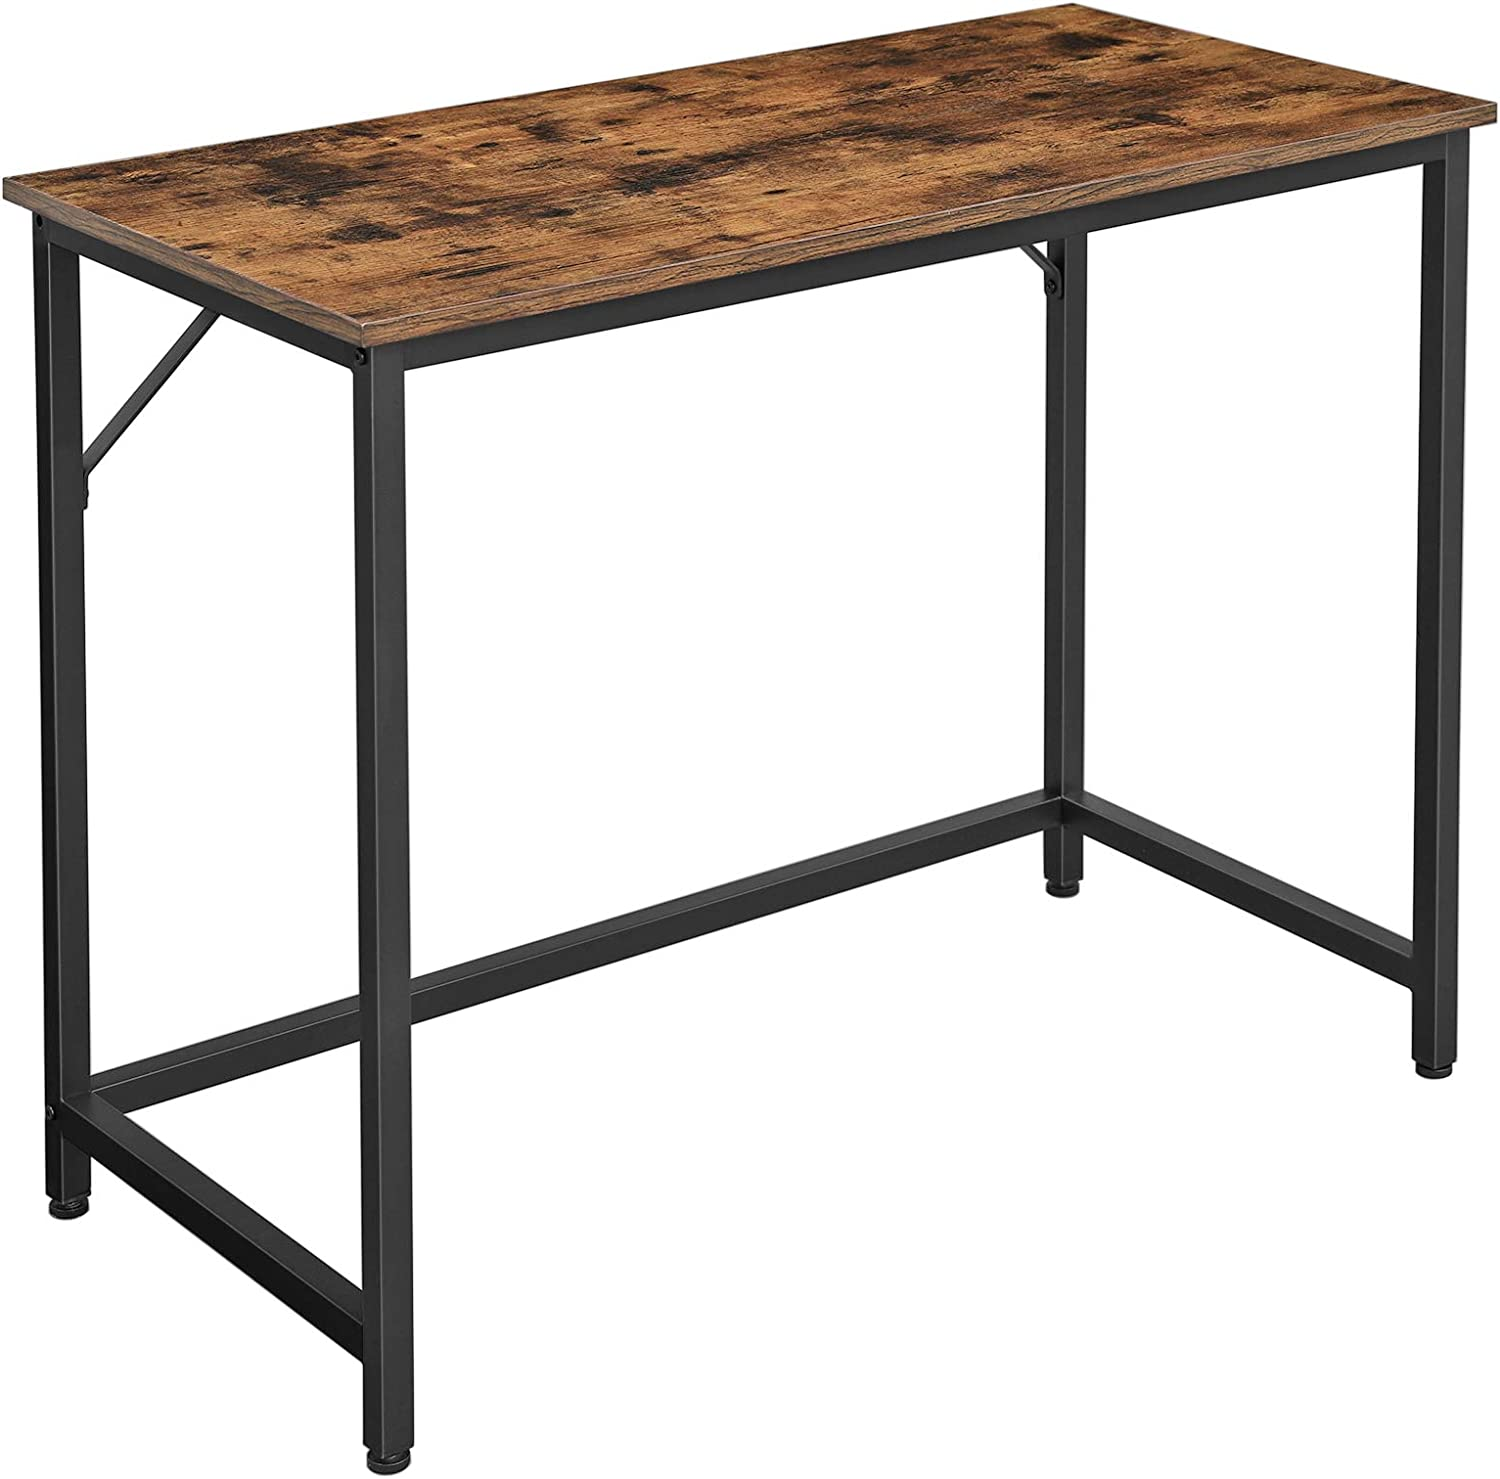 VASAGLE Computer Desk, 39-Inch Writing Desk, Home Office Small Study Workstation, Industrial Style PC Laptop Table, Simple Assembly, Metal Frame, Rustic Brown and Black ULWD41X